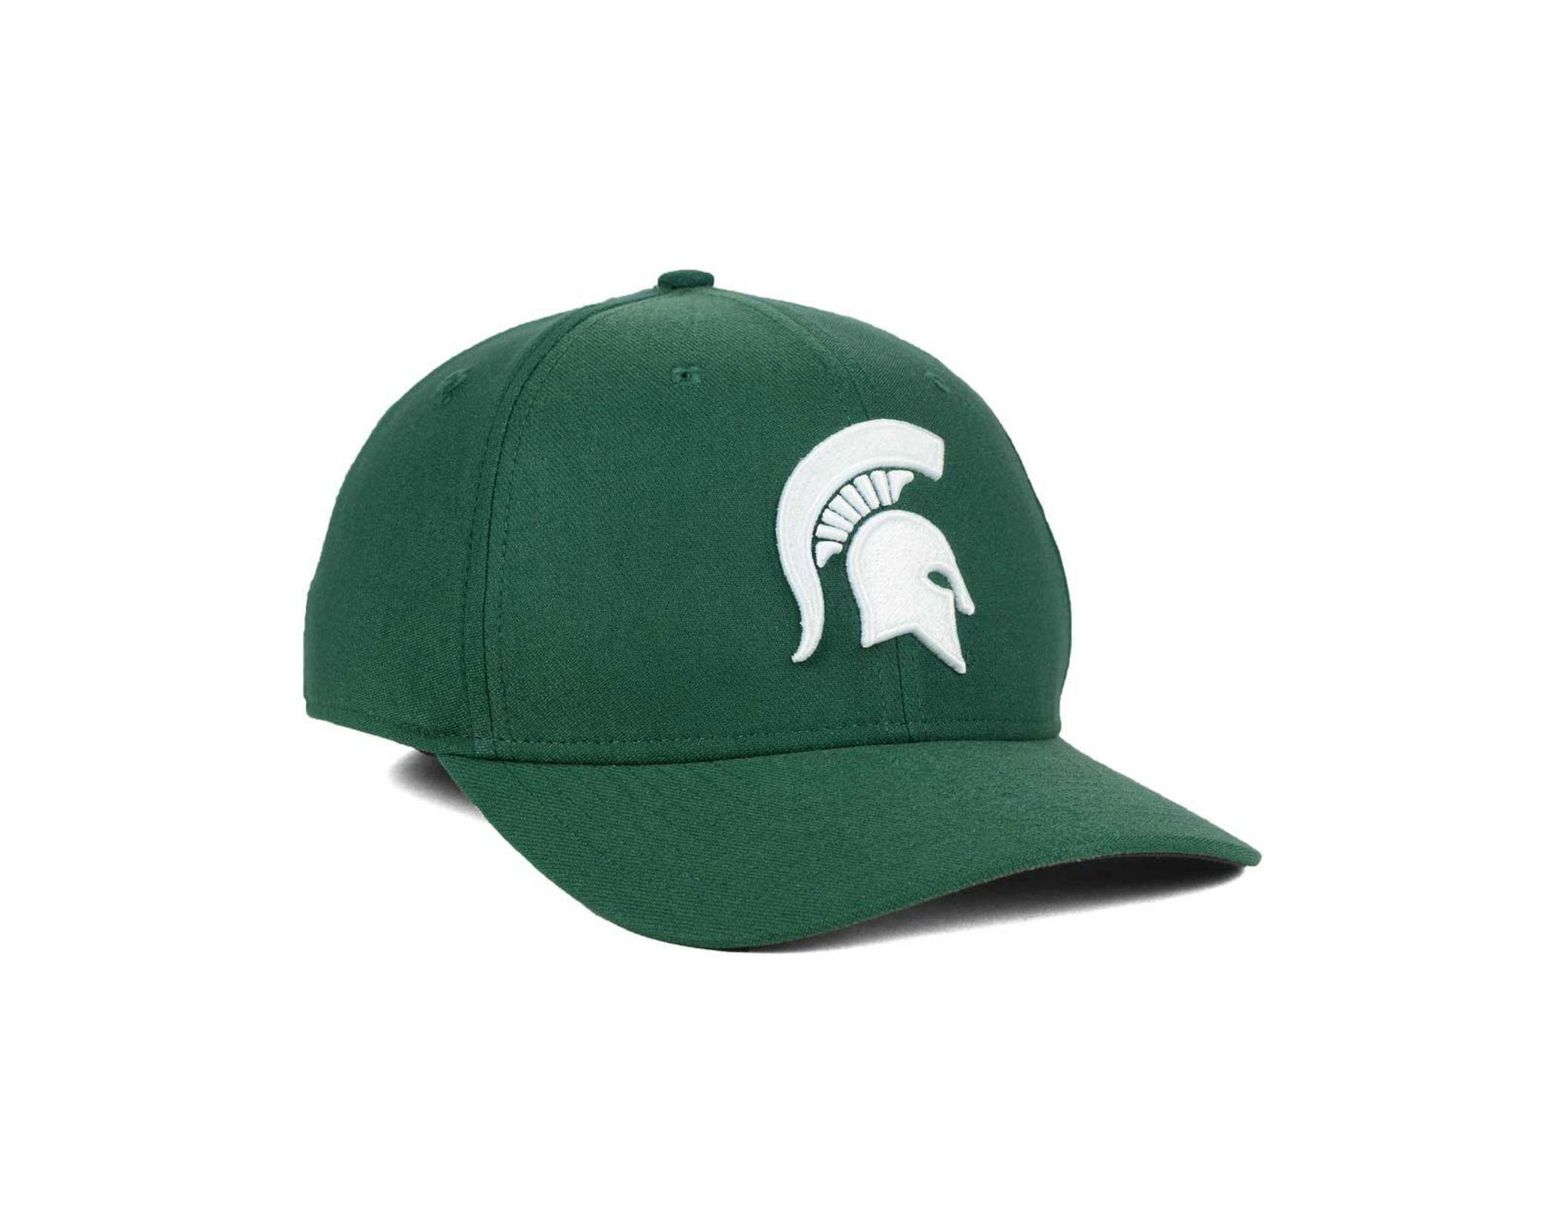 new product 40191 eff17 Nike Michigan State Spartans Classic Swoosh Cap in Green for Men - Save 40%  - Lyst